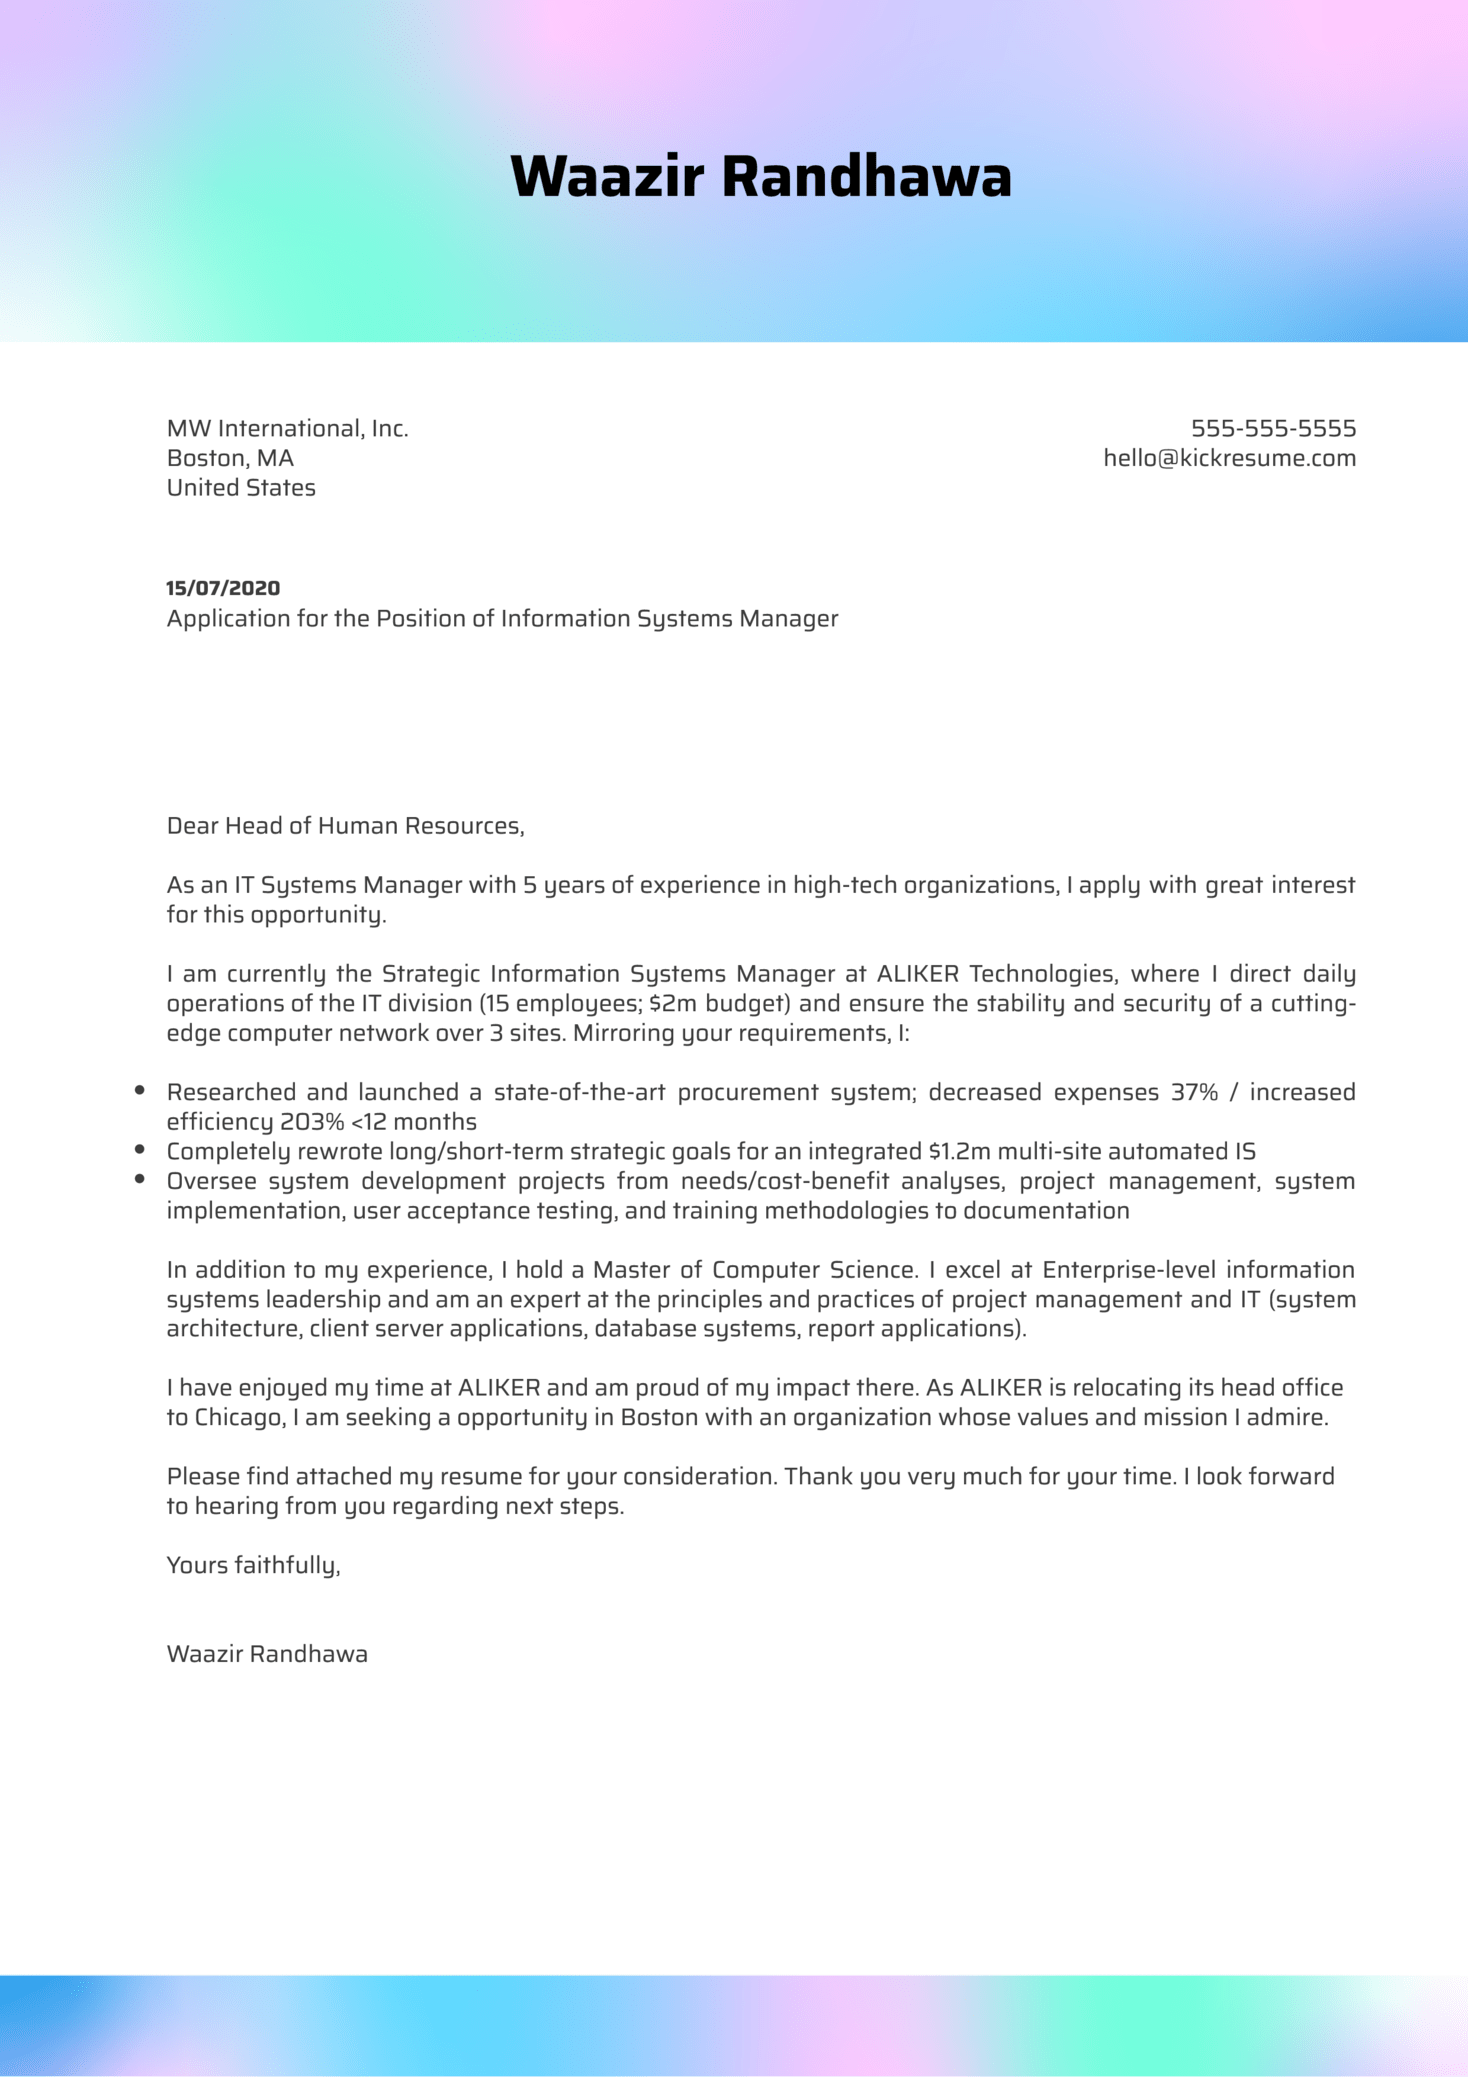 Information Systems Manager Cover Letter Example